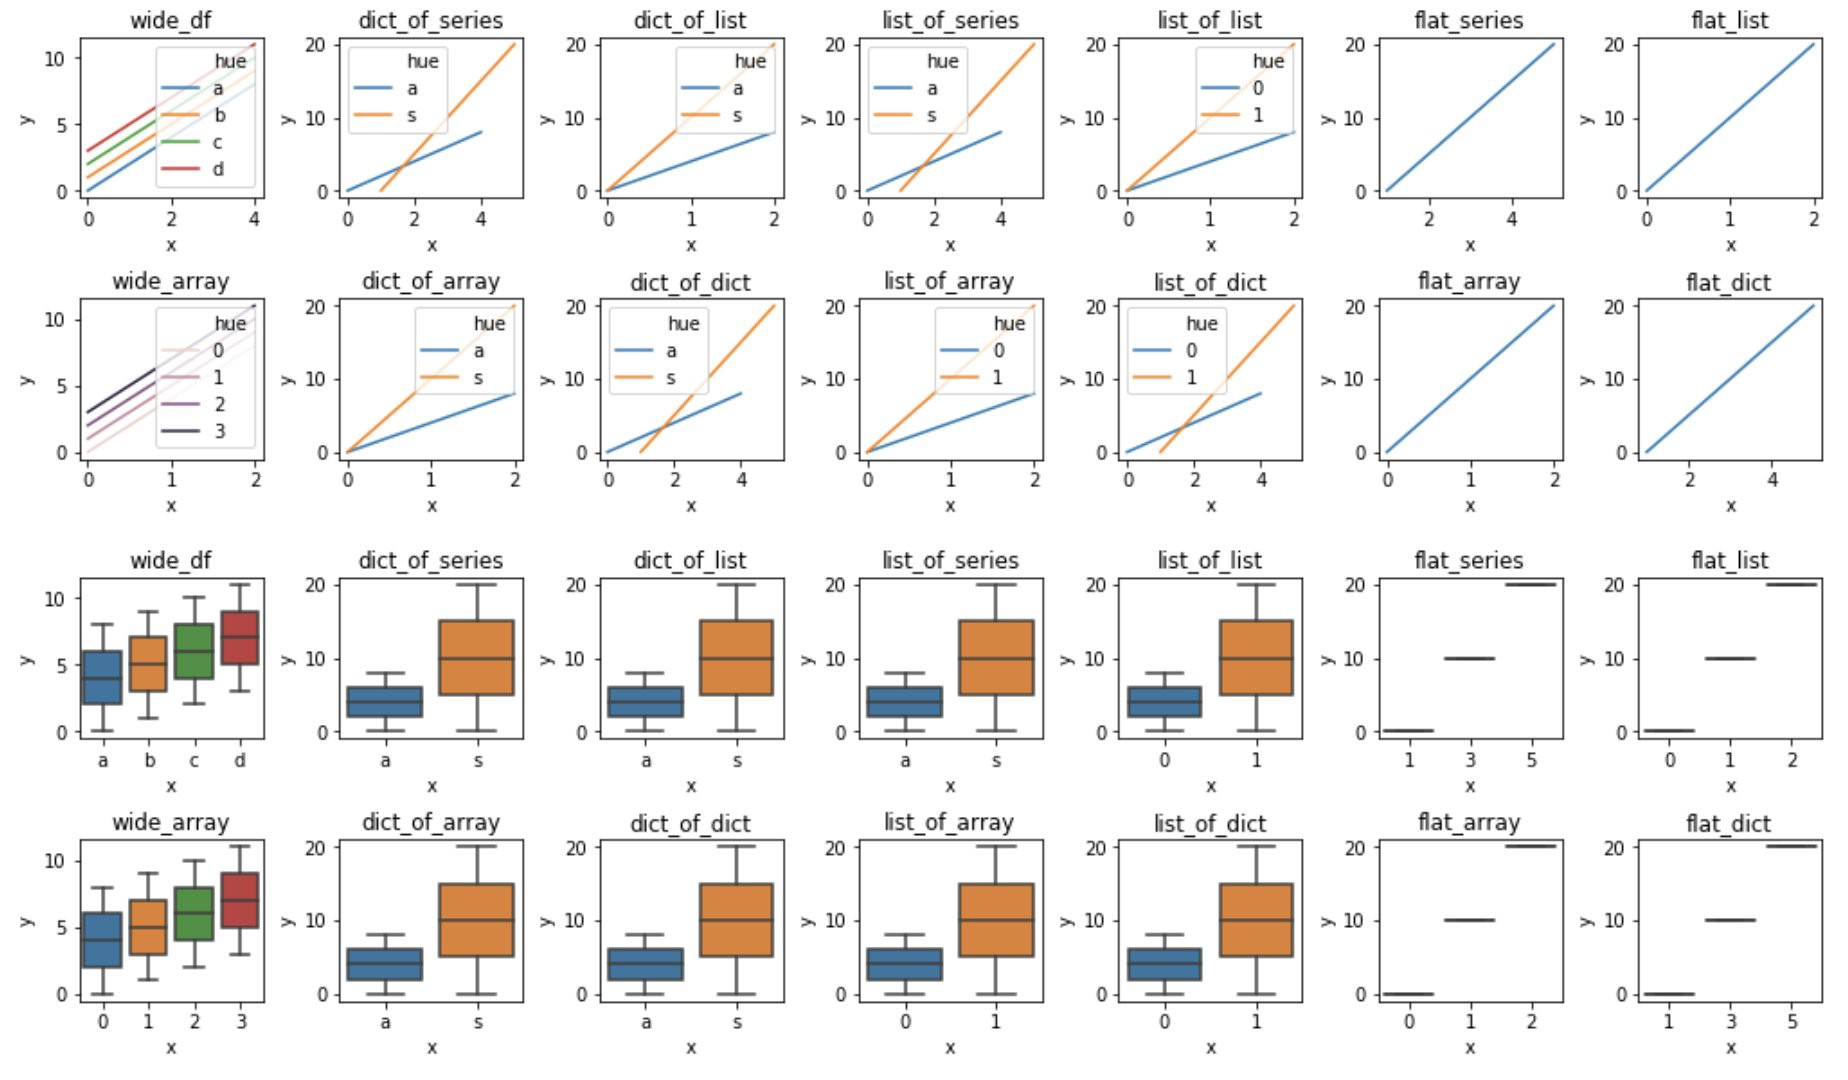 The rules that lineplot and boxplot use for wide-form data